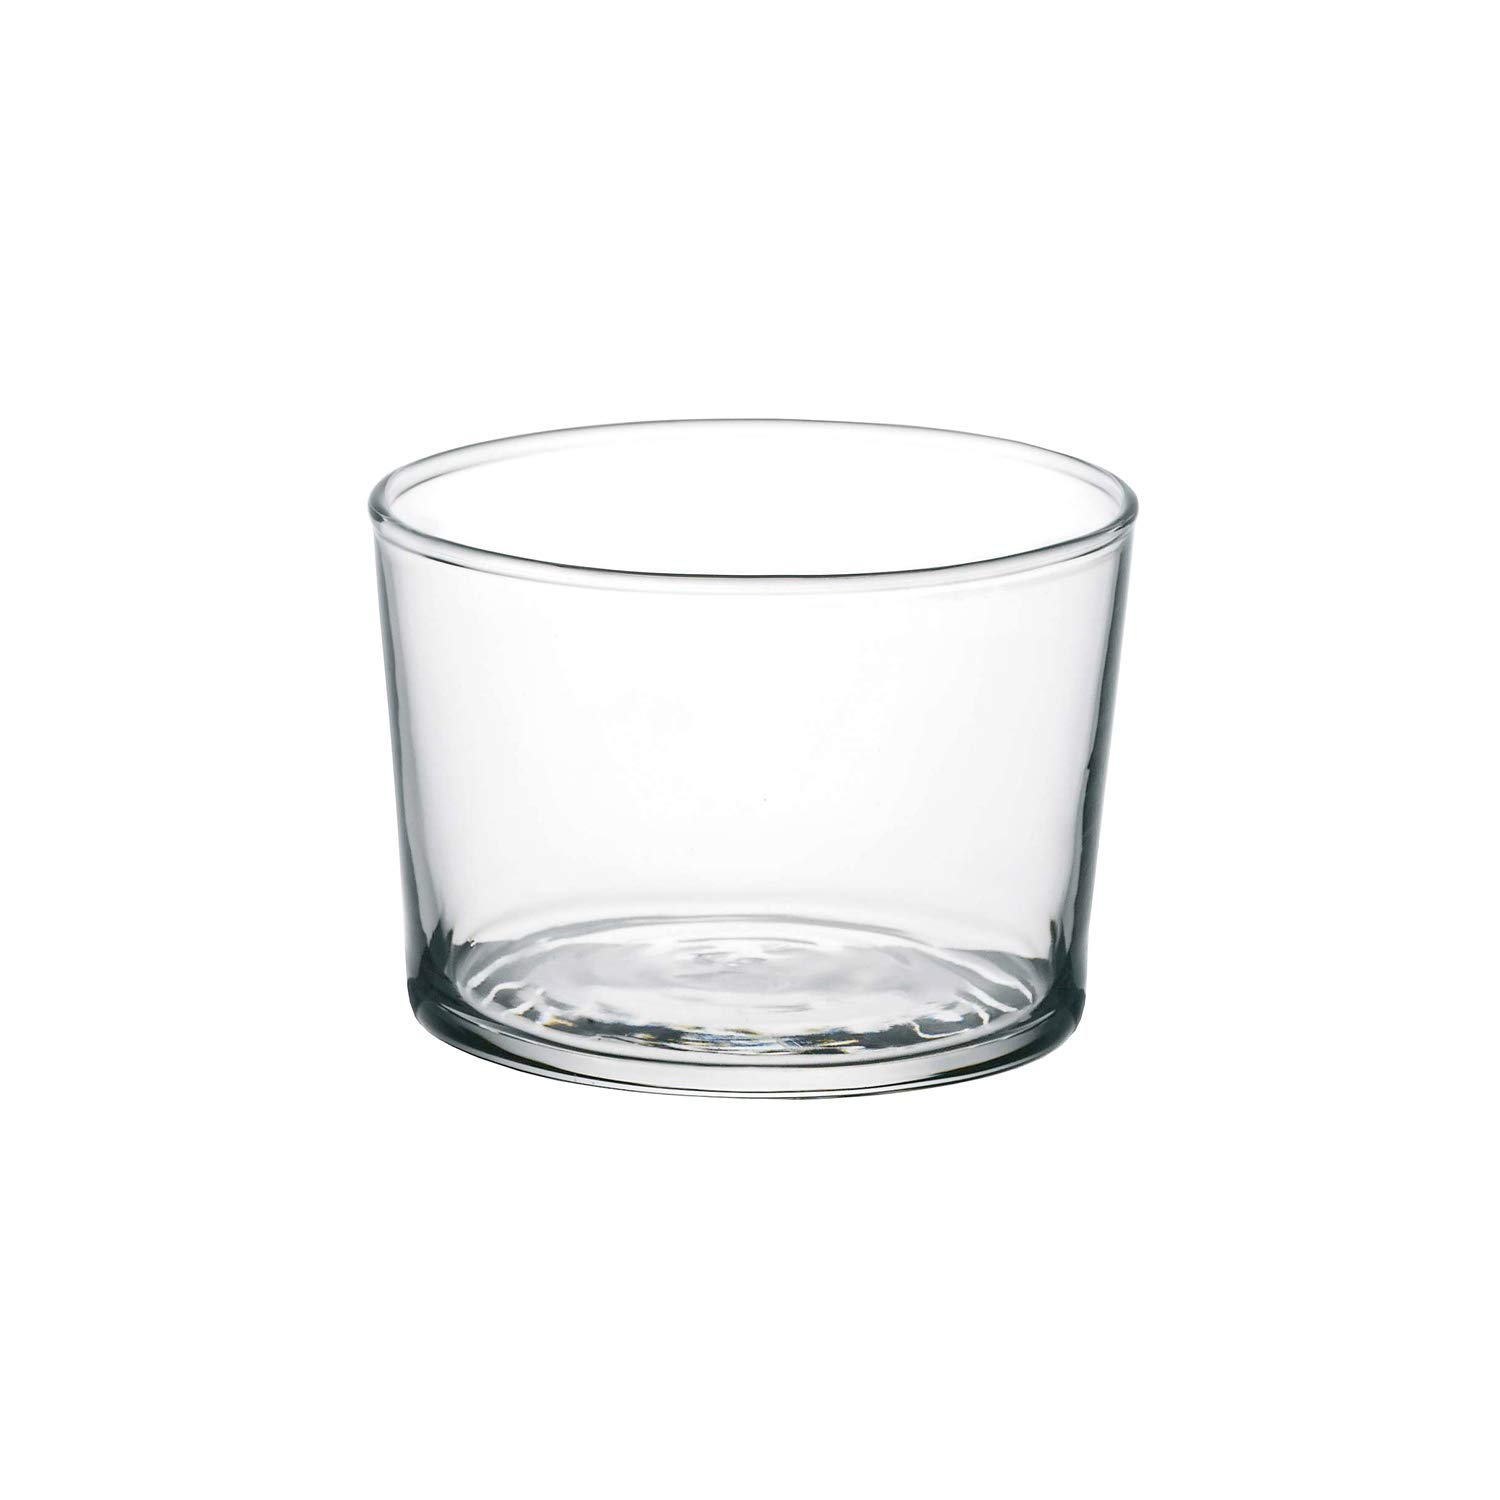 Spanish wine glass tumblers